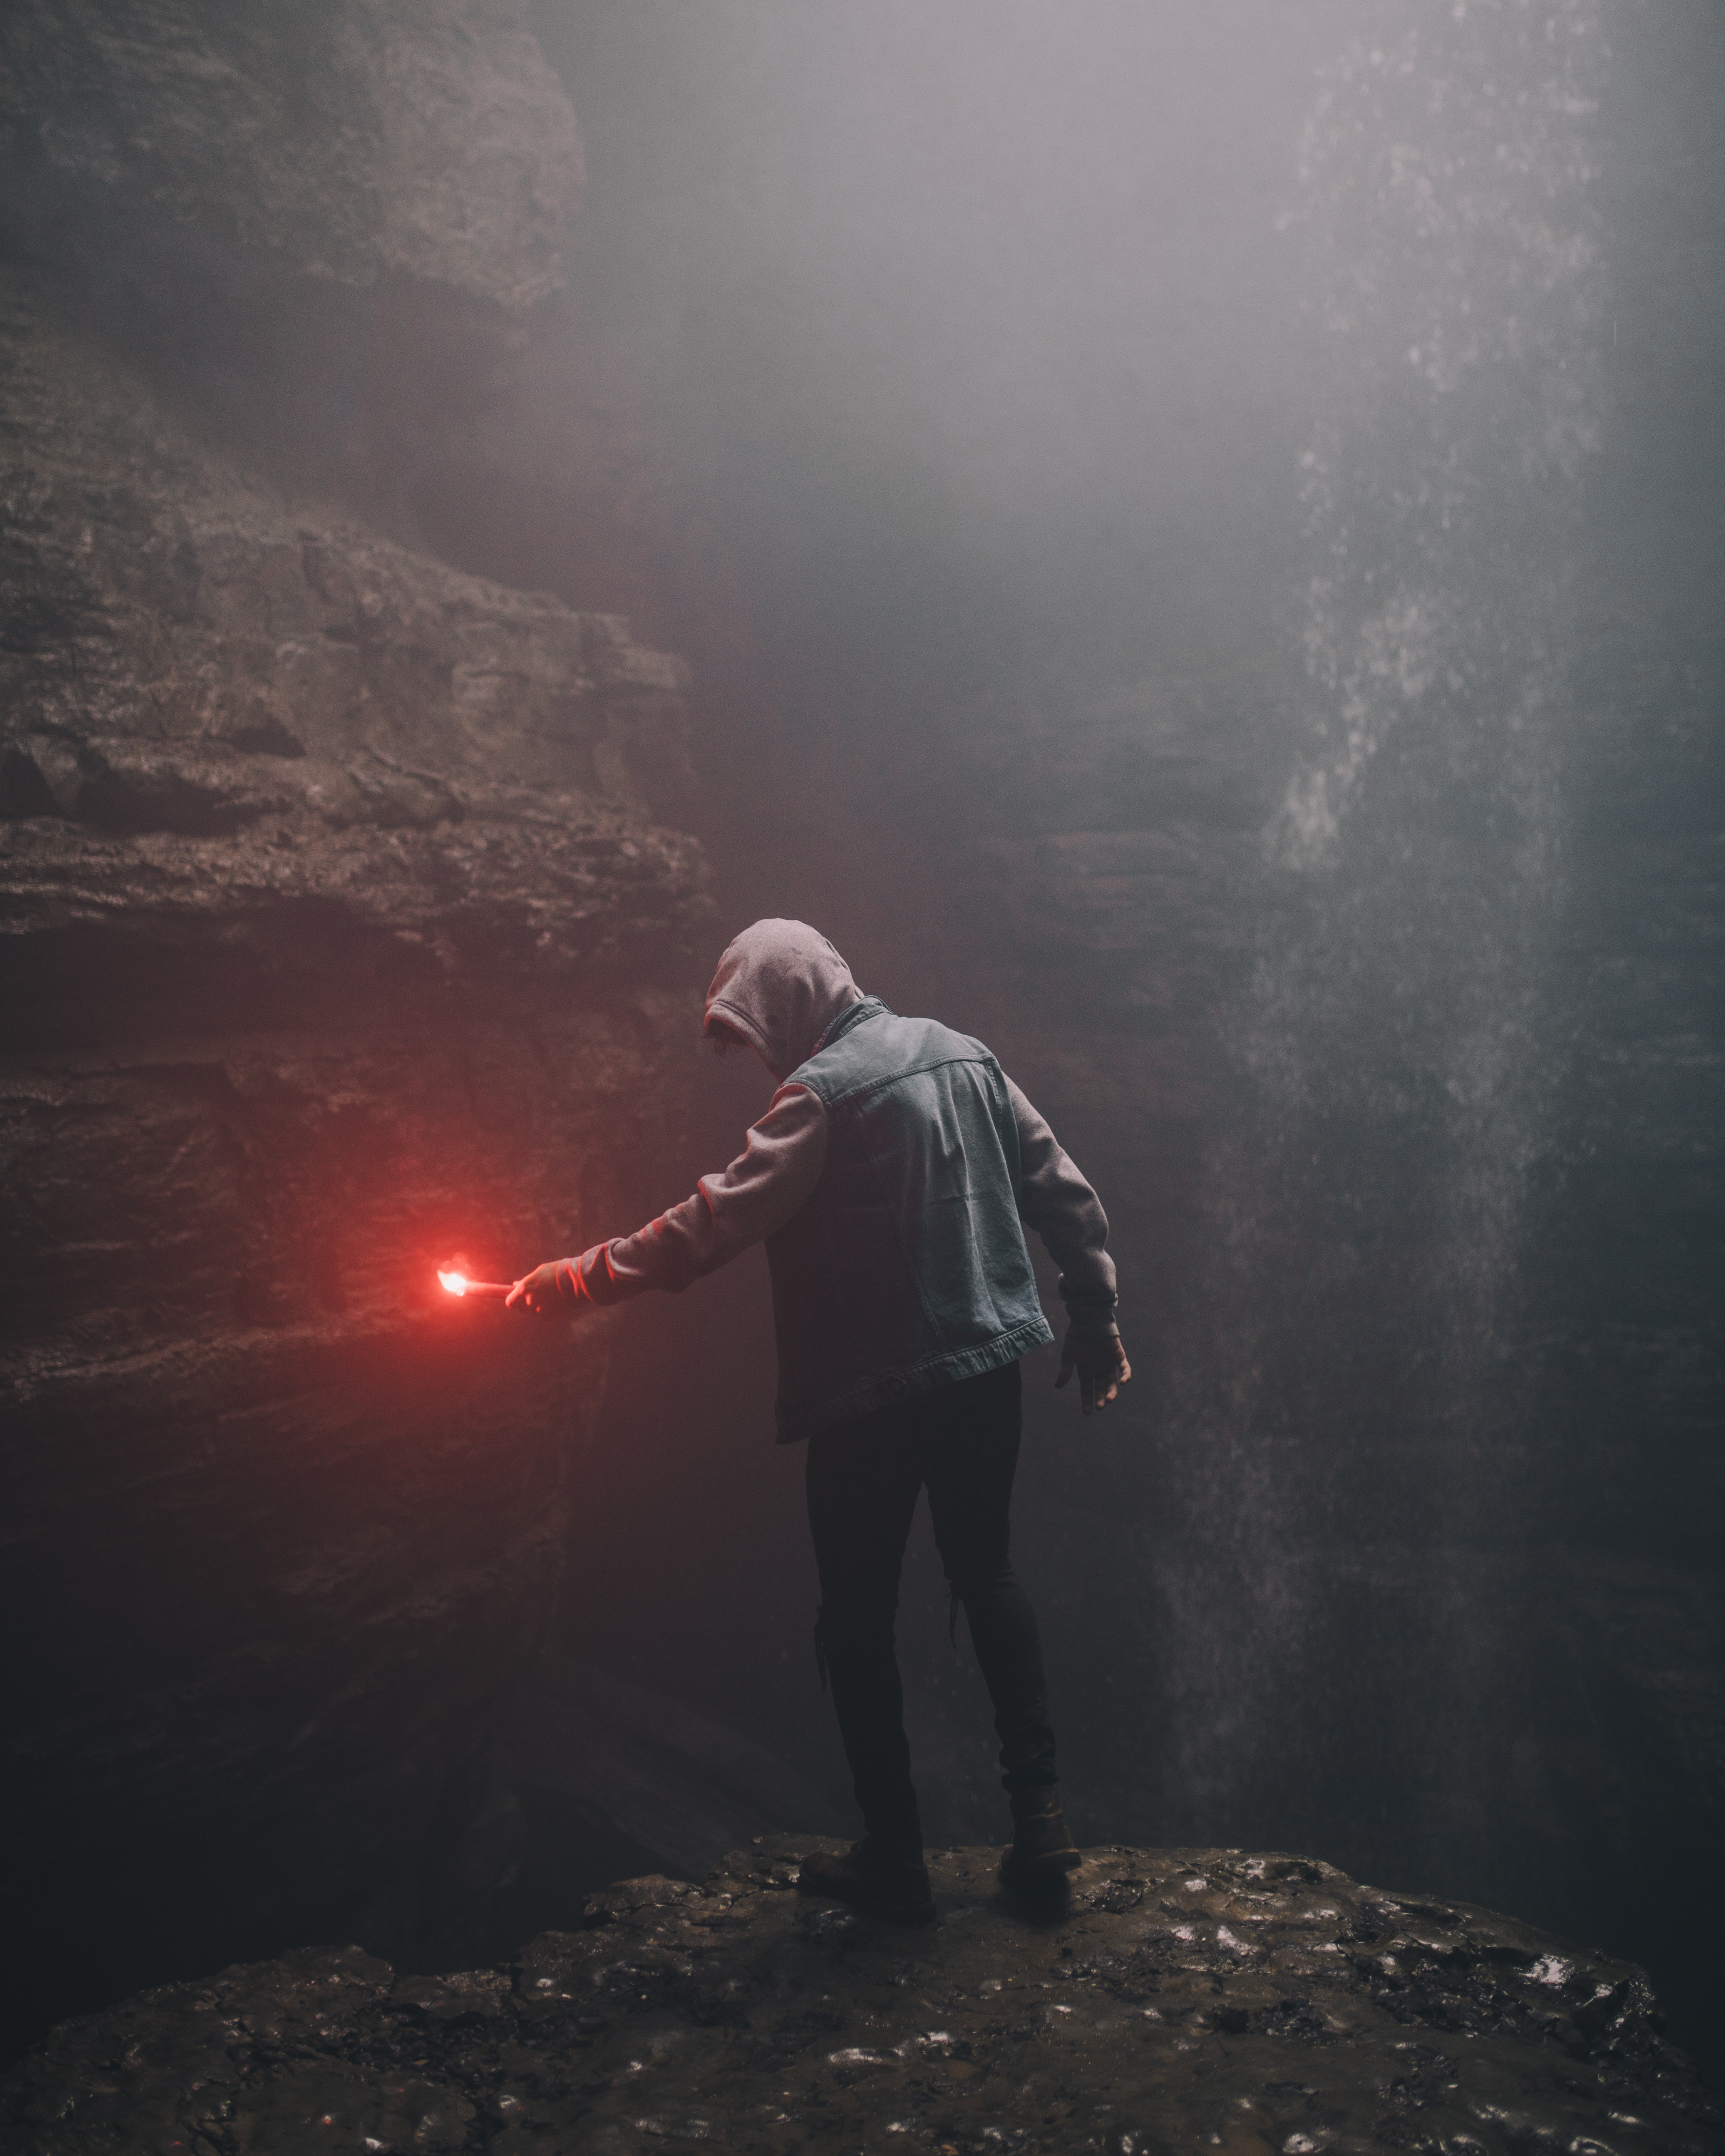 man on edge of cliff holding signal flare light